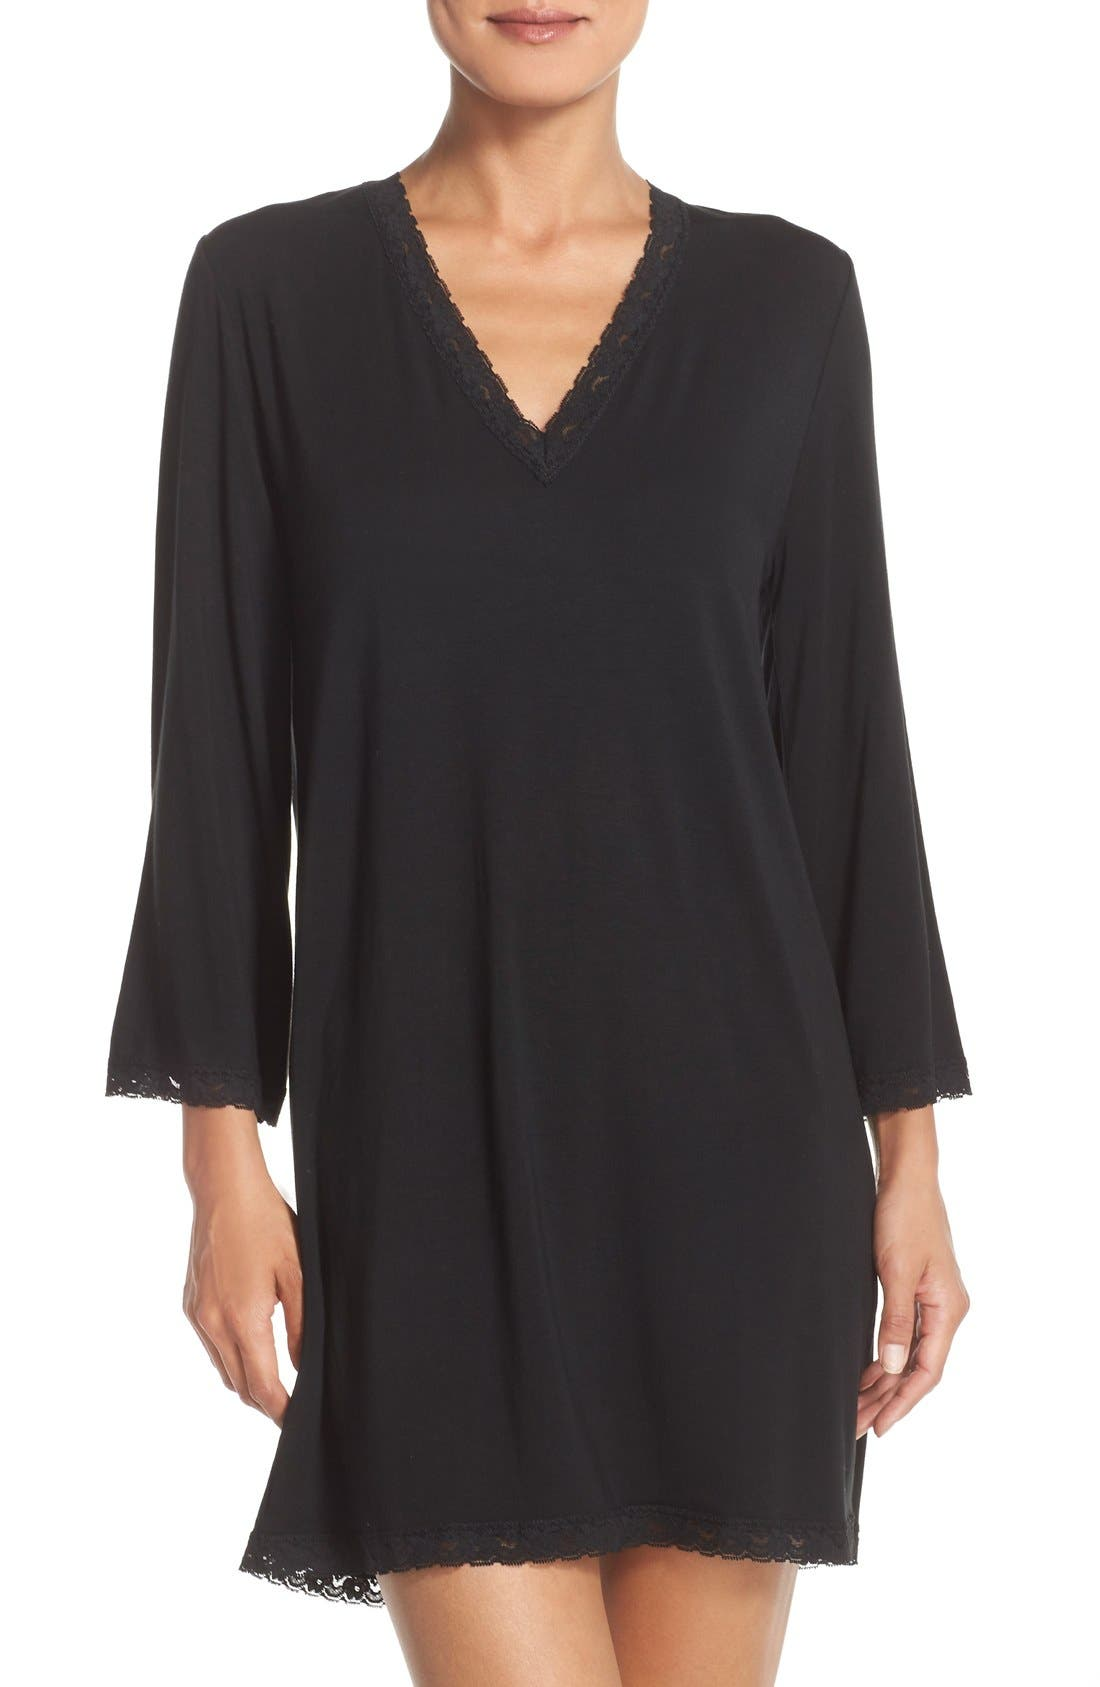 Barefoot Dreams® 'Luxe Milk' Jersey Nightshirt